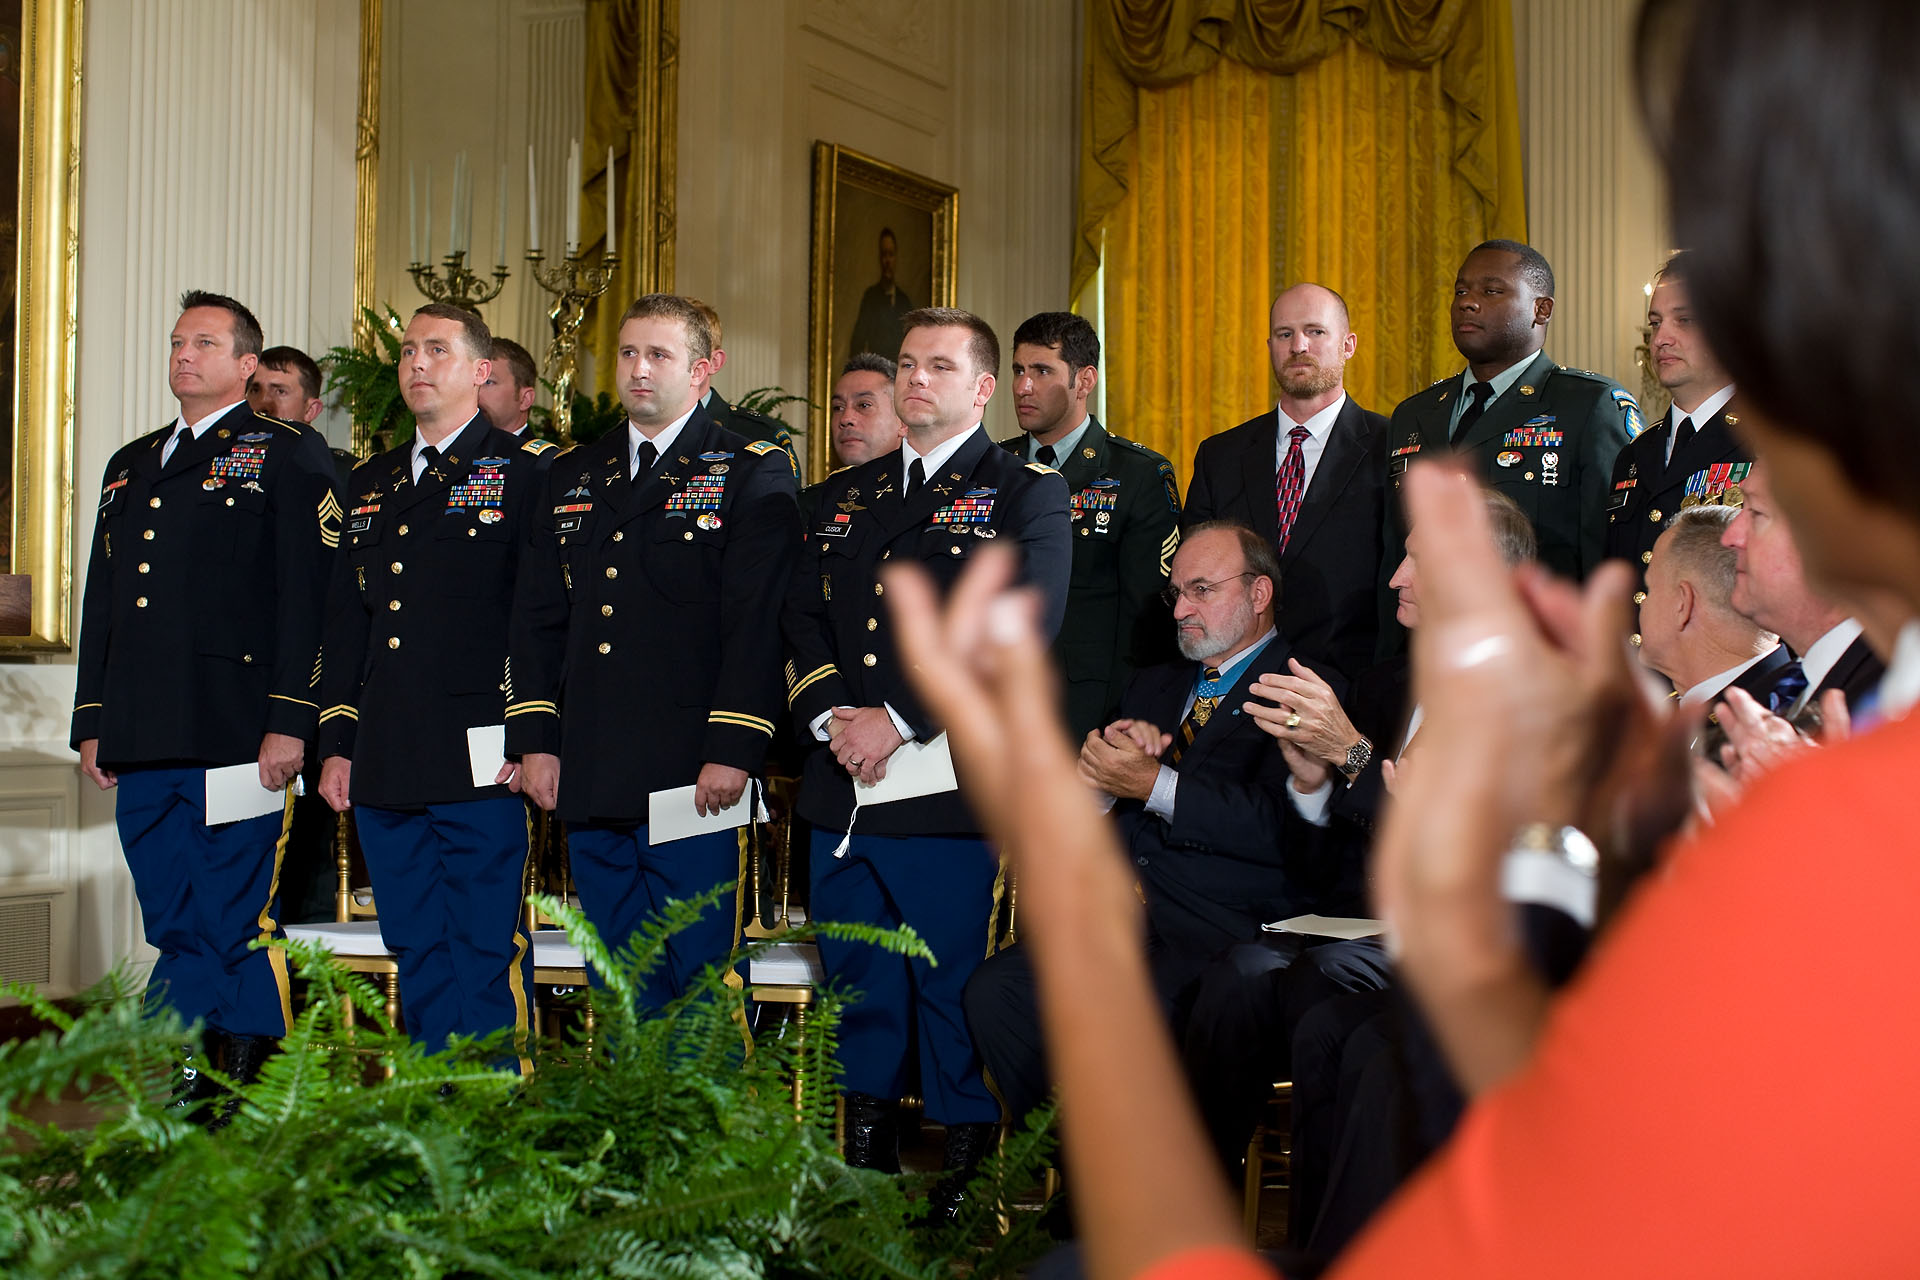 First Lady Michelle Obama Applauds the Members of Staff Sergeant Robert J. Miller's Team Who Were With Him in Afghanistan, During the Presentation of the Medal of Honor